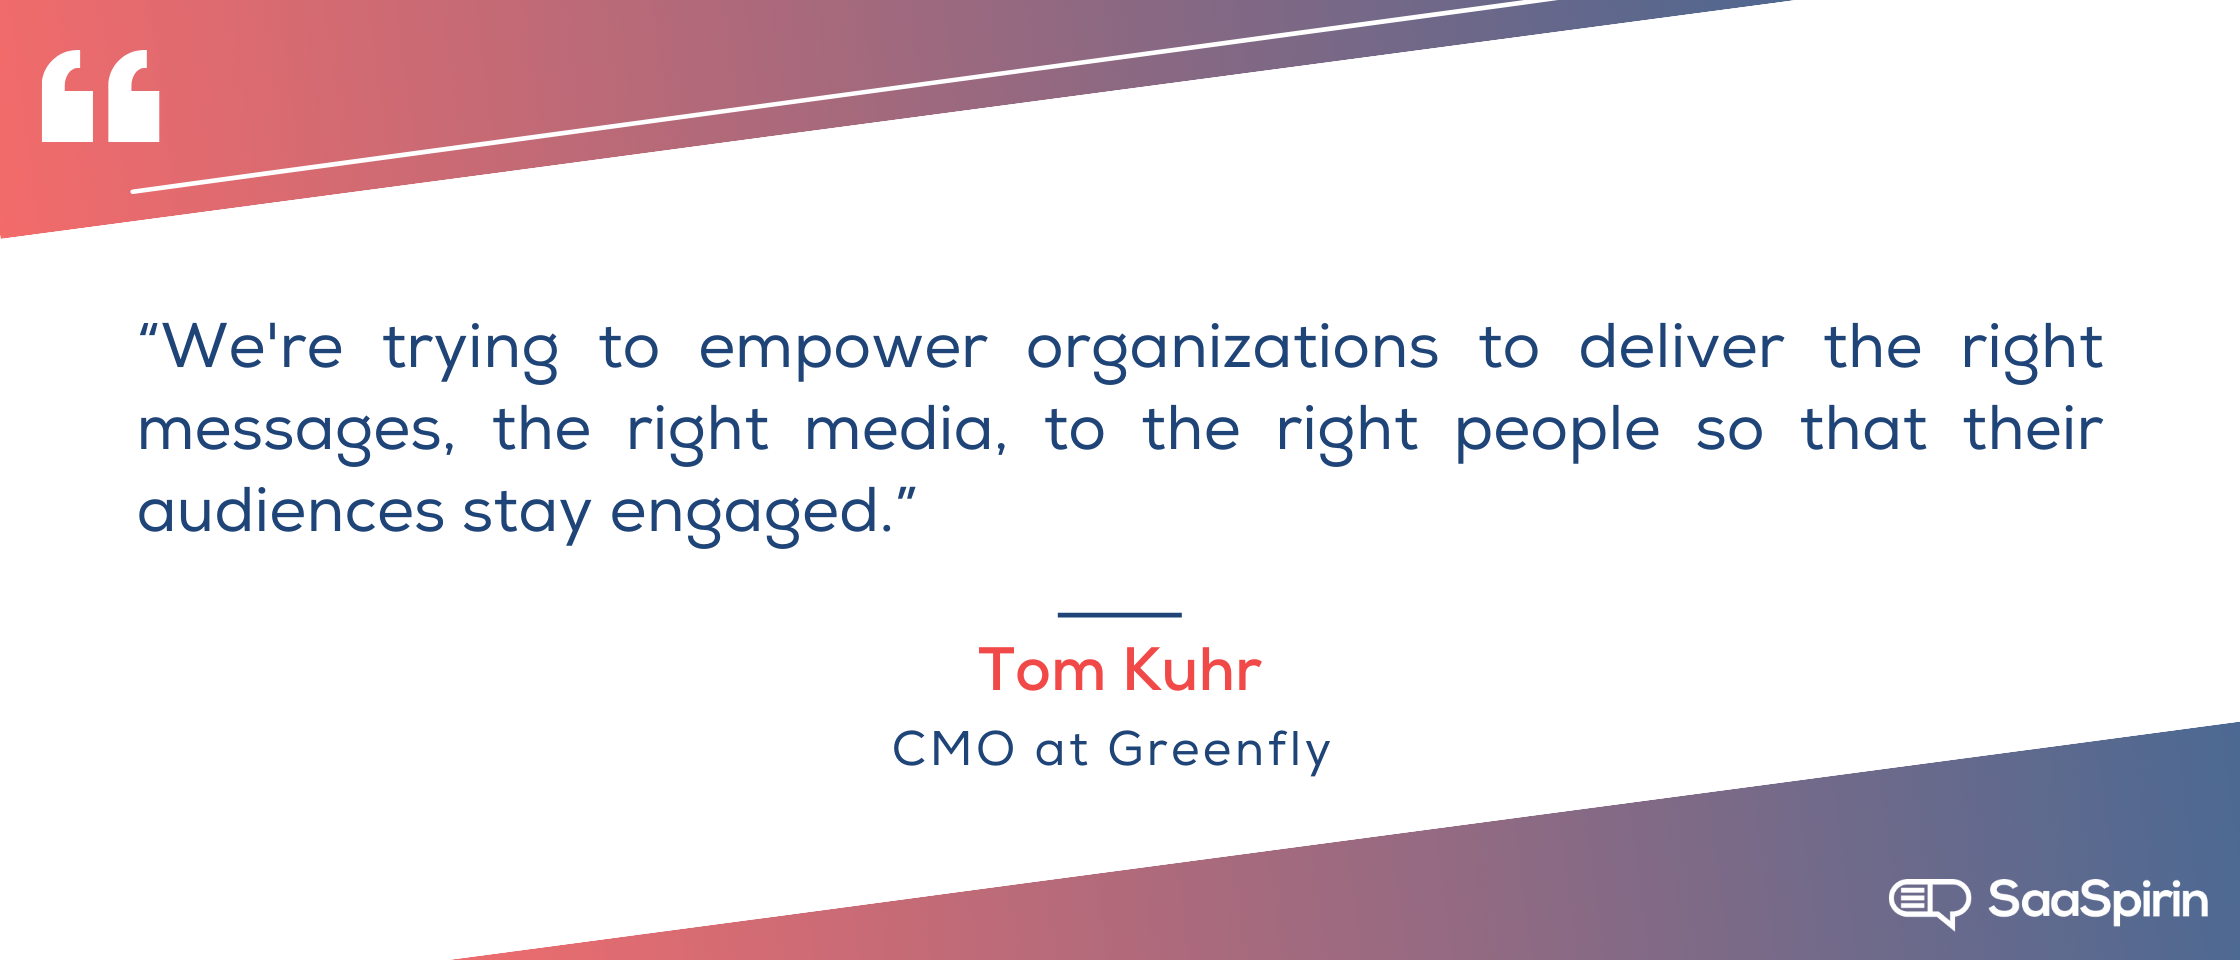 Were-trying-to-empower-organizations-to-deliver-the-right-messages-the-right-media-to-the-right-people-so-that-their-audiences-stay-engaged.png